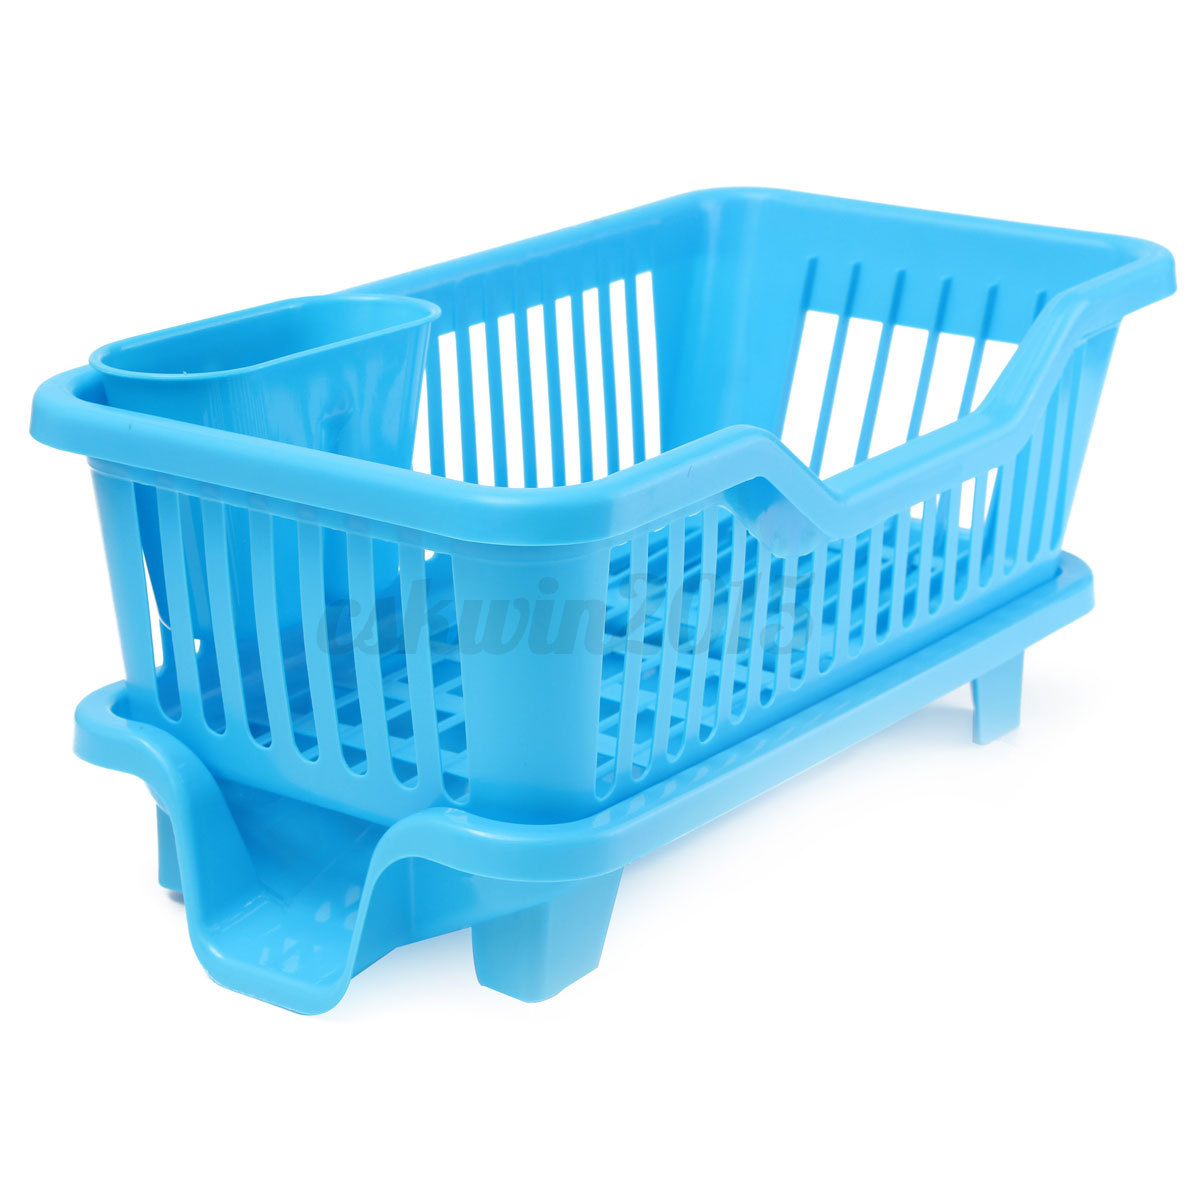 Kitchen Dish Cup Sink Drainer Drying Rack Washing Holder